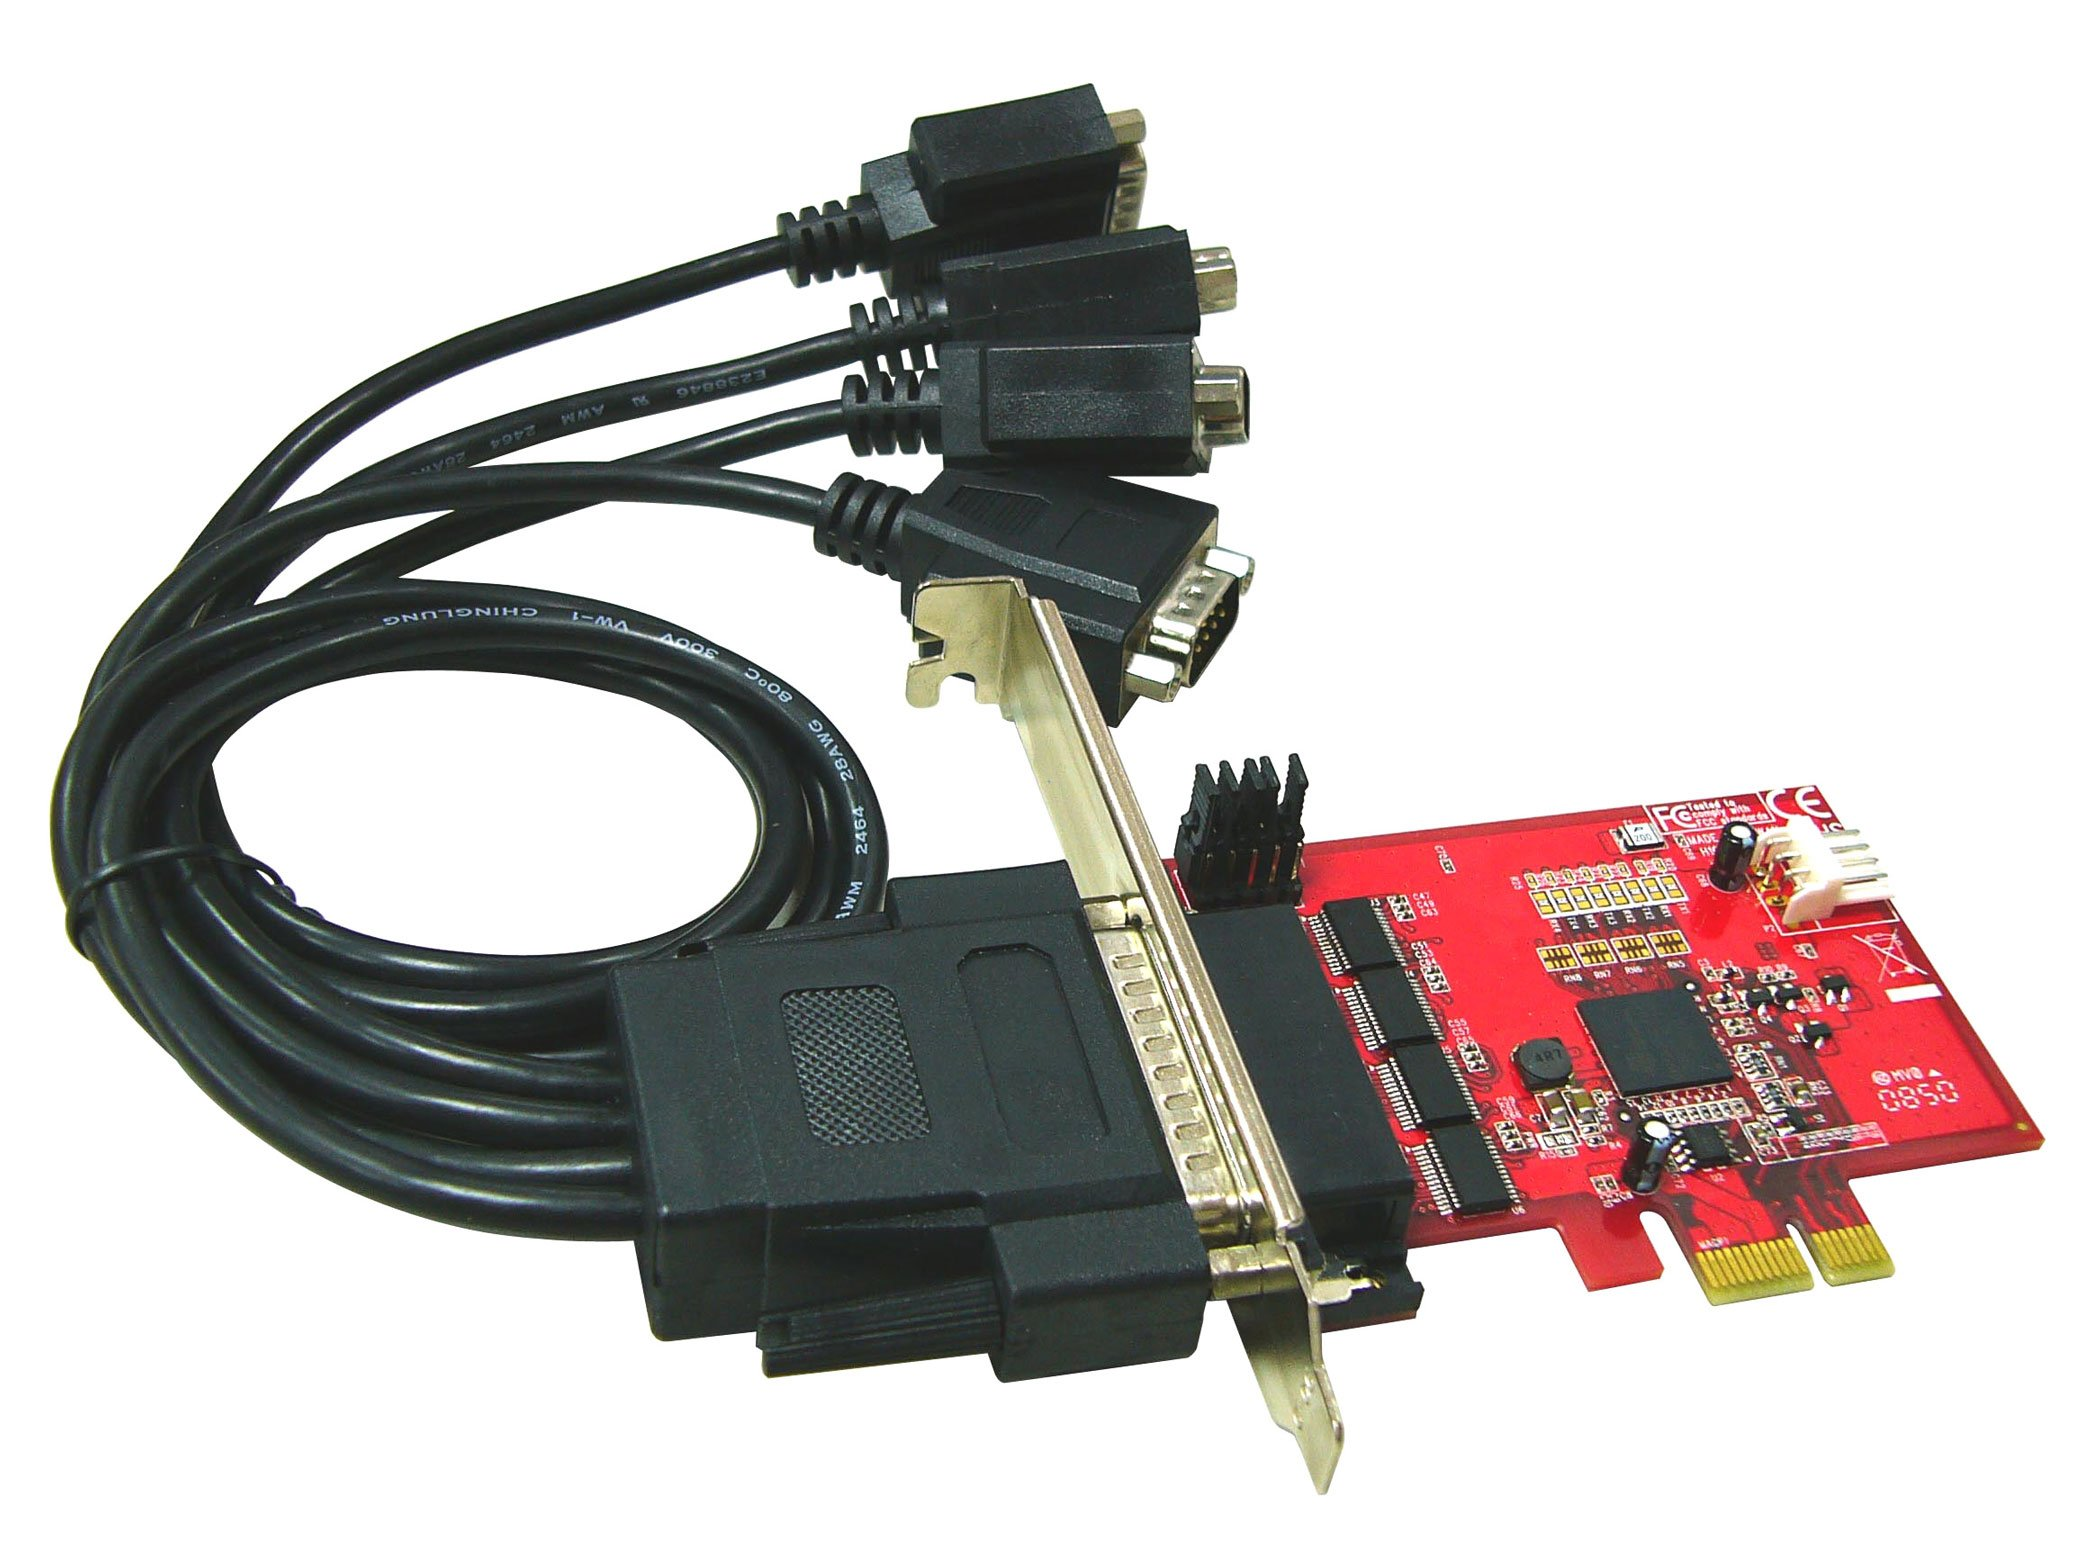 Ableconn PEX4S-954 4 Port RS232 PCI Express Serial Adapter Card with Power Output and 16950 UART (OXPCIe954 Chipset) - Optional 5V Power Output on Pin9 of DB9 by Ableconn